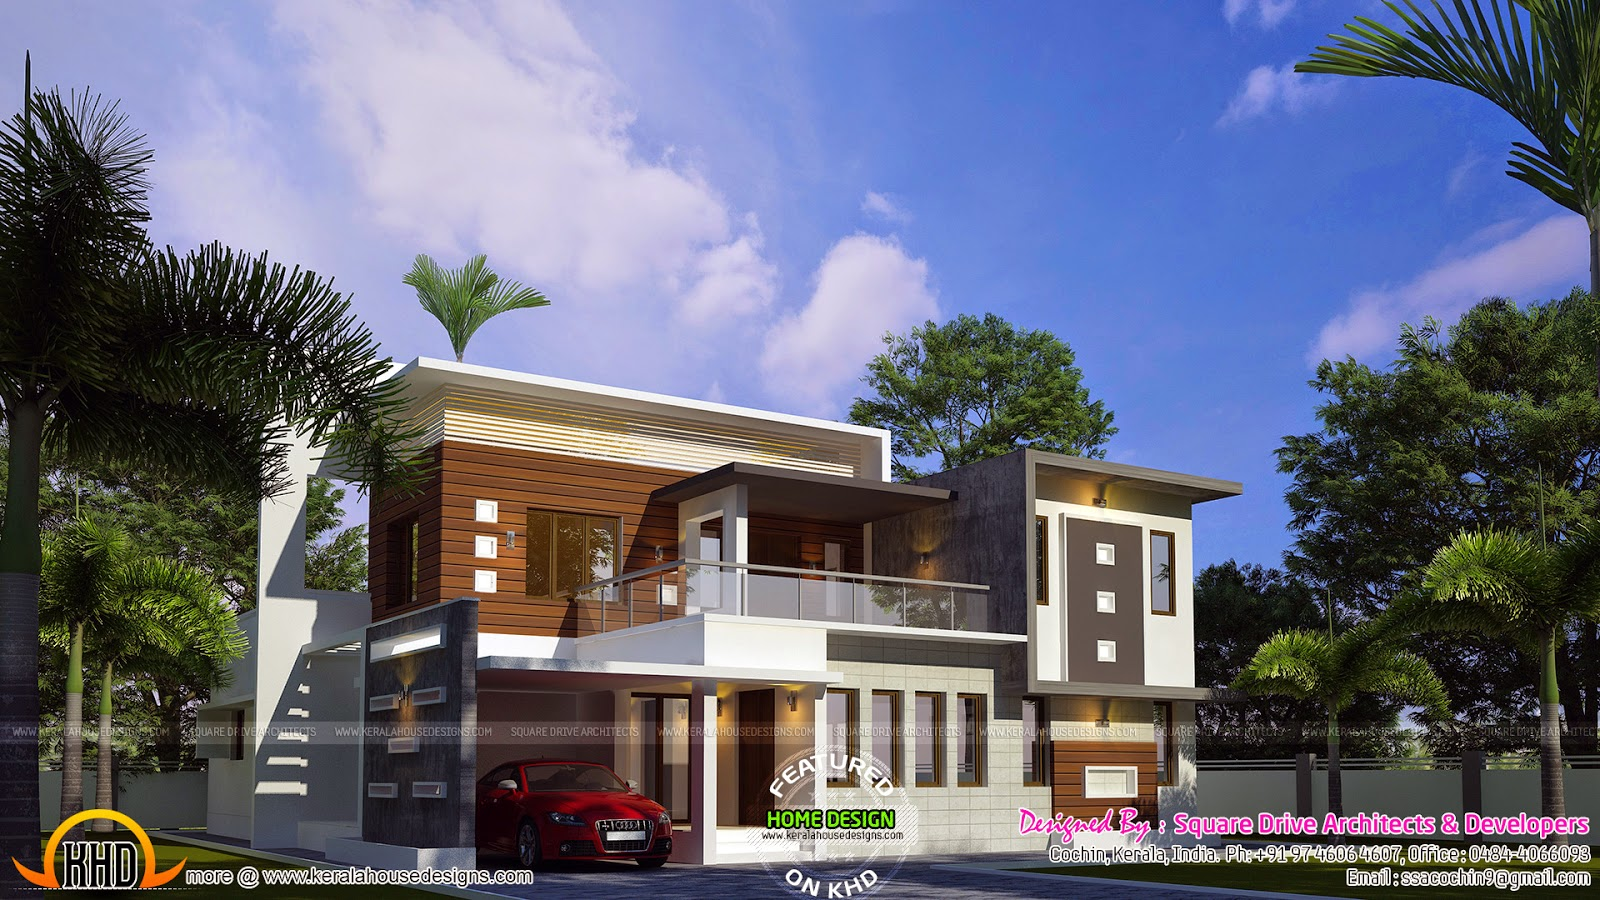 1951 sq ft modern sloped roof home keralahousedesigns for Contemporary villa